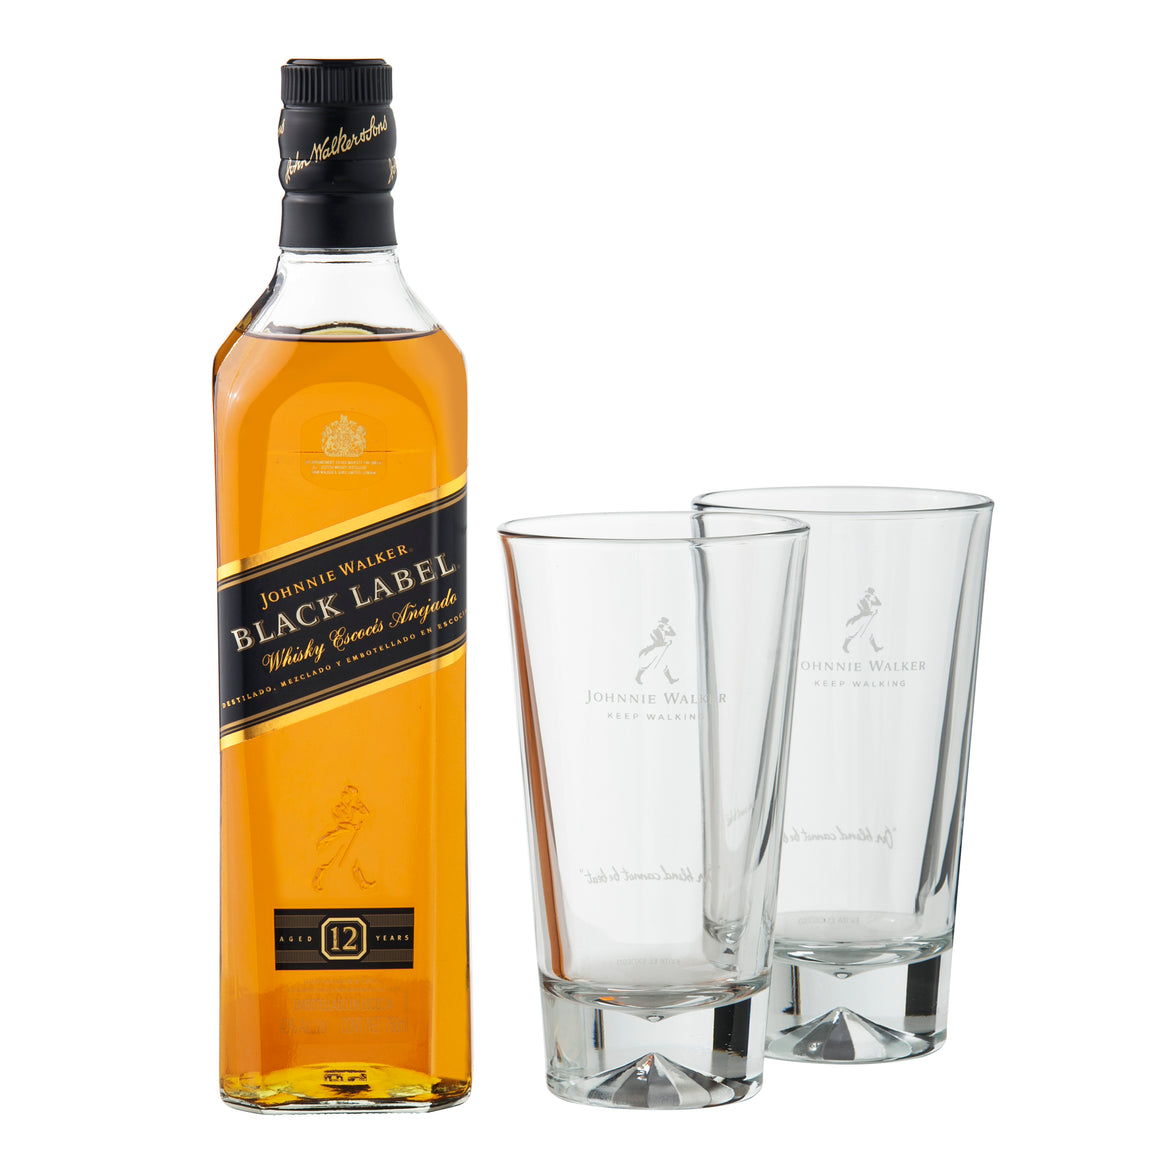 Whisky Johnnie Walker Etiqueta Negra 750 ml + 2 vasos